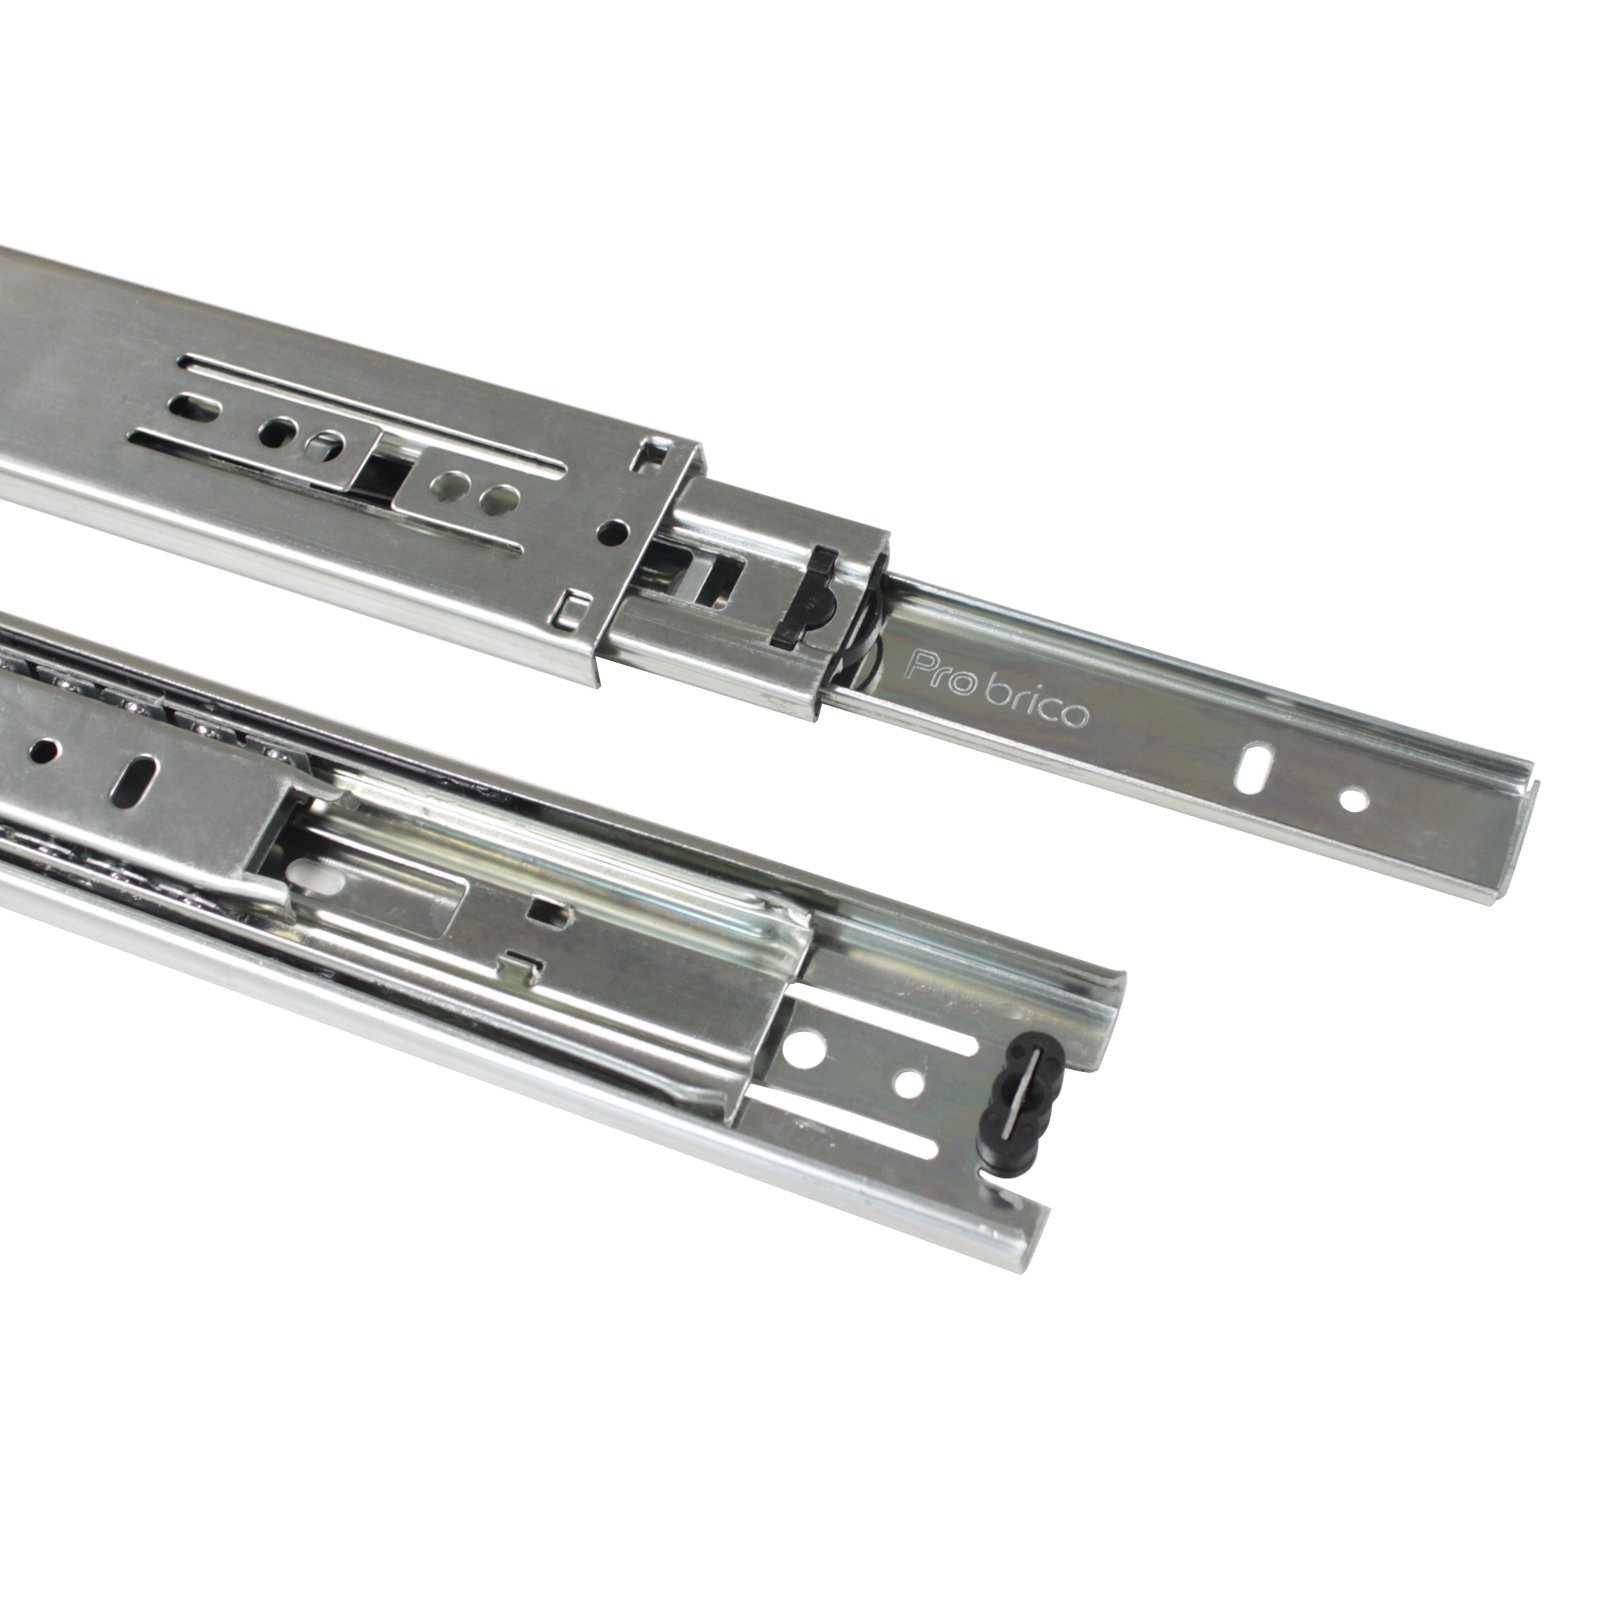 2 Pairs 22 inch Full Extension Side Mount Drawer Slides 3-Folds Ball Bearing Heavy Duty 100 lb Thickness:1.01.01.2mm by Probrico (Image #5)